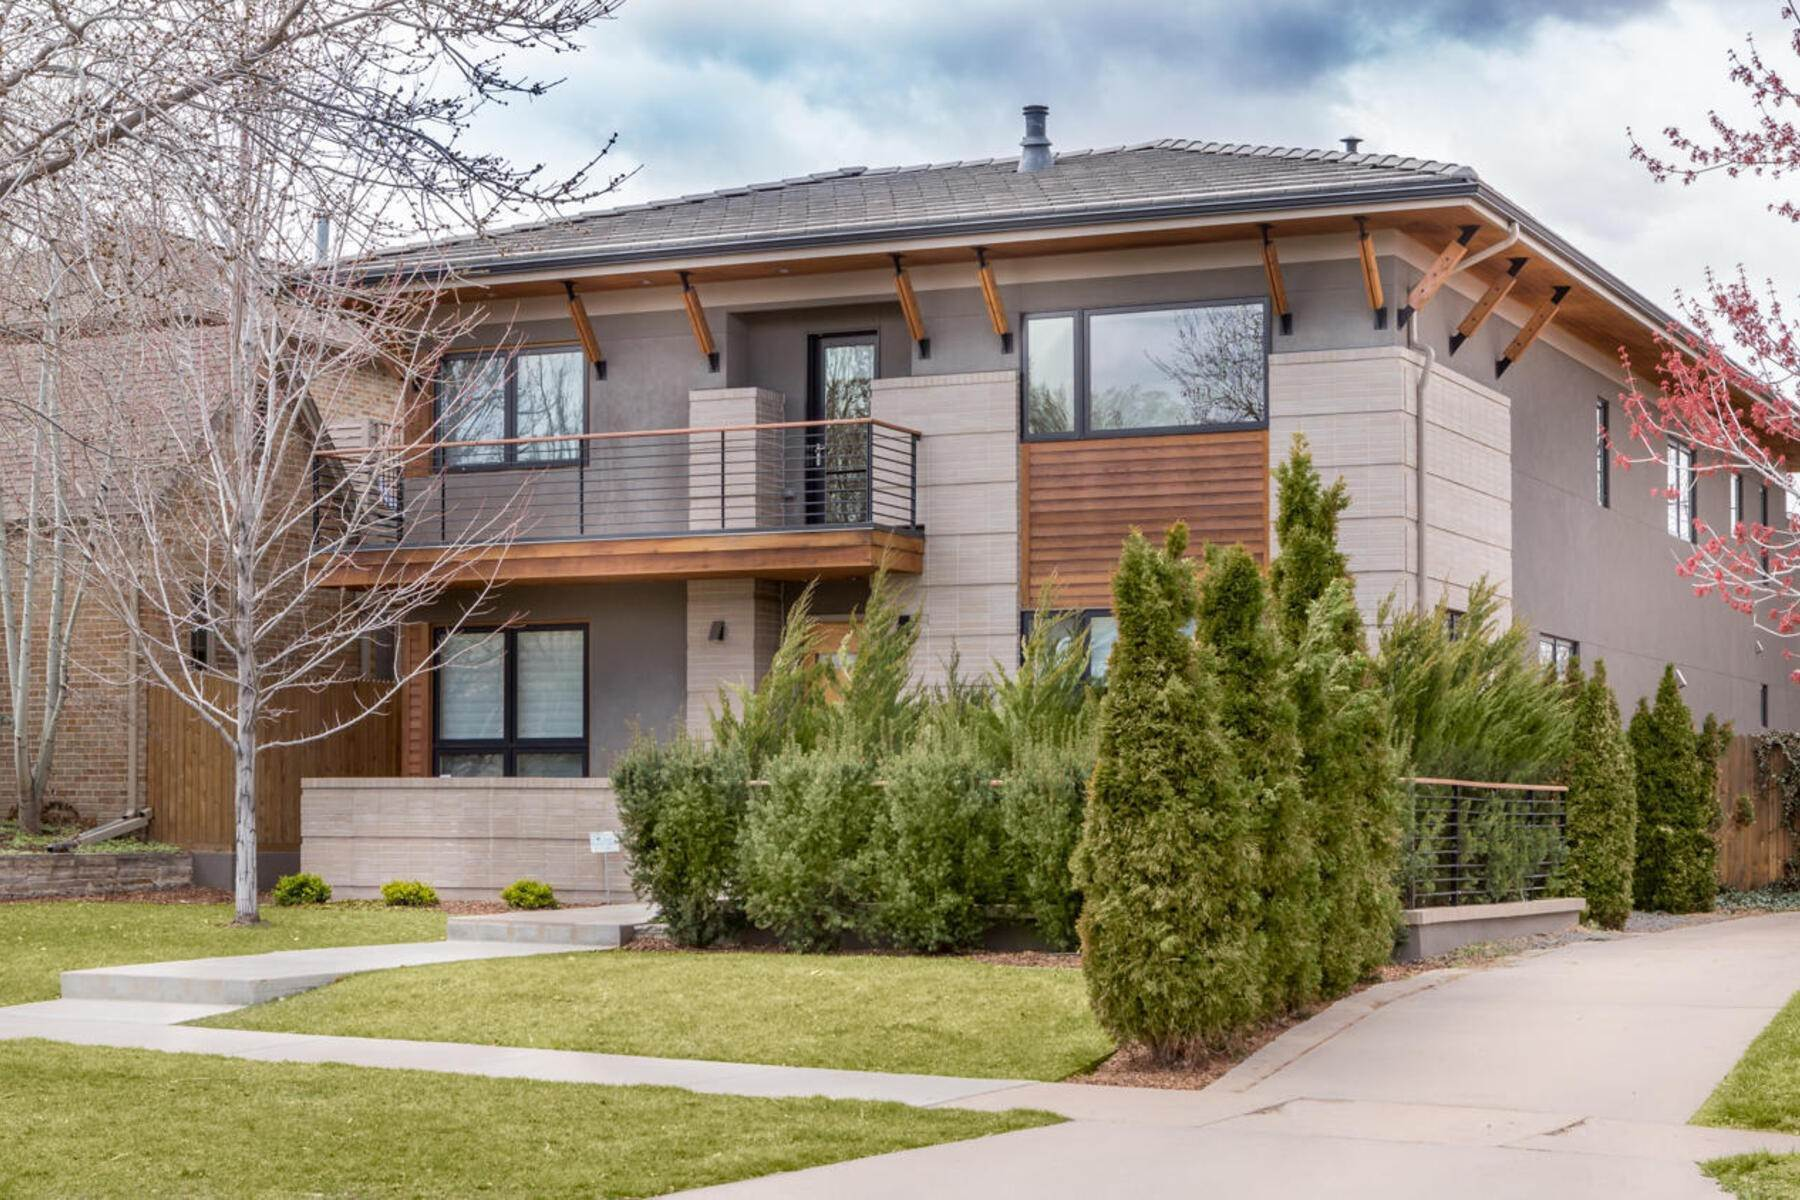 Single Family Homes for Active at 559 Madison Street, Denver, Co, 80206 559 Madison Street Denver, Colorado 80206 United States